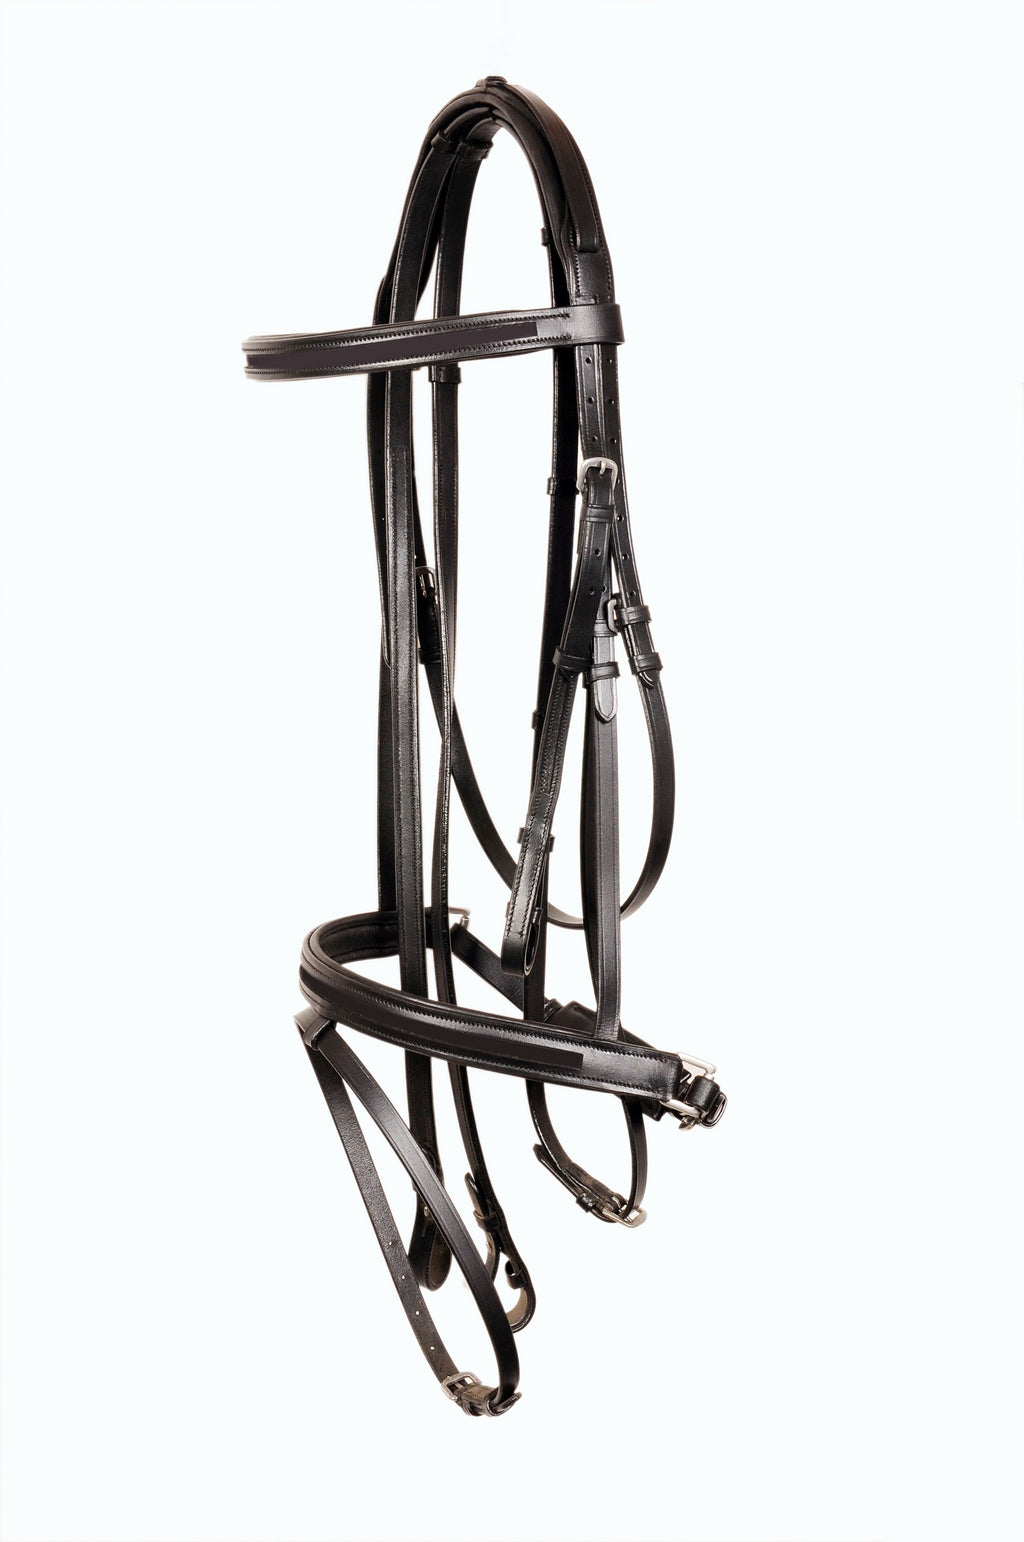 Empty Channel Leather Horse Bridles / Bridle 8 mm